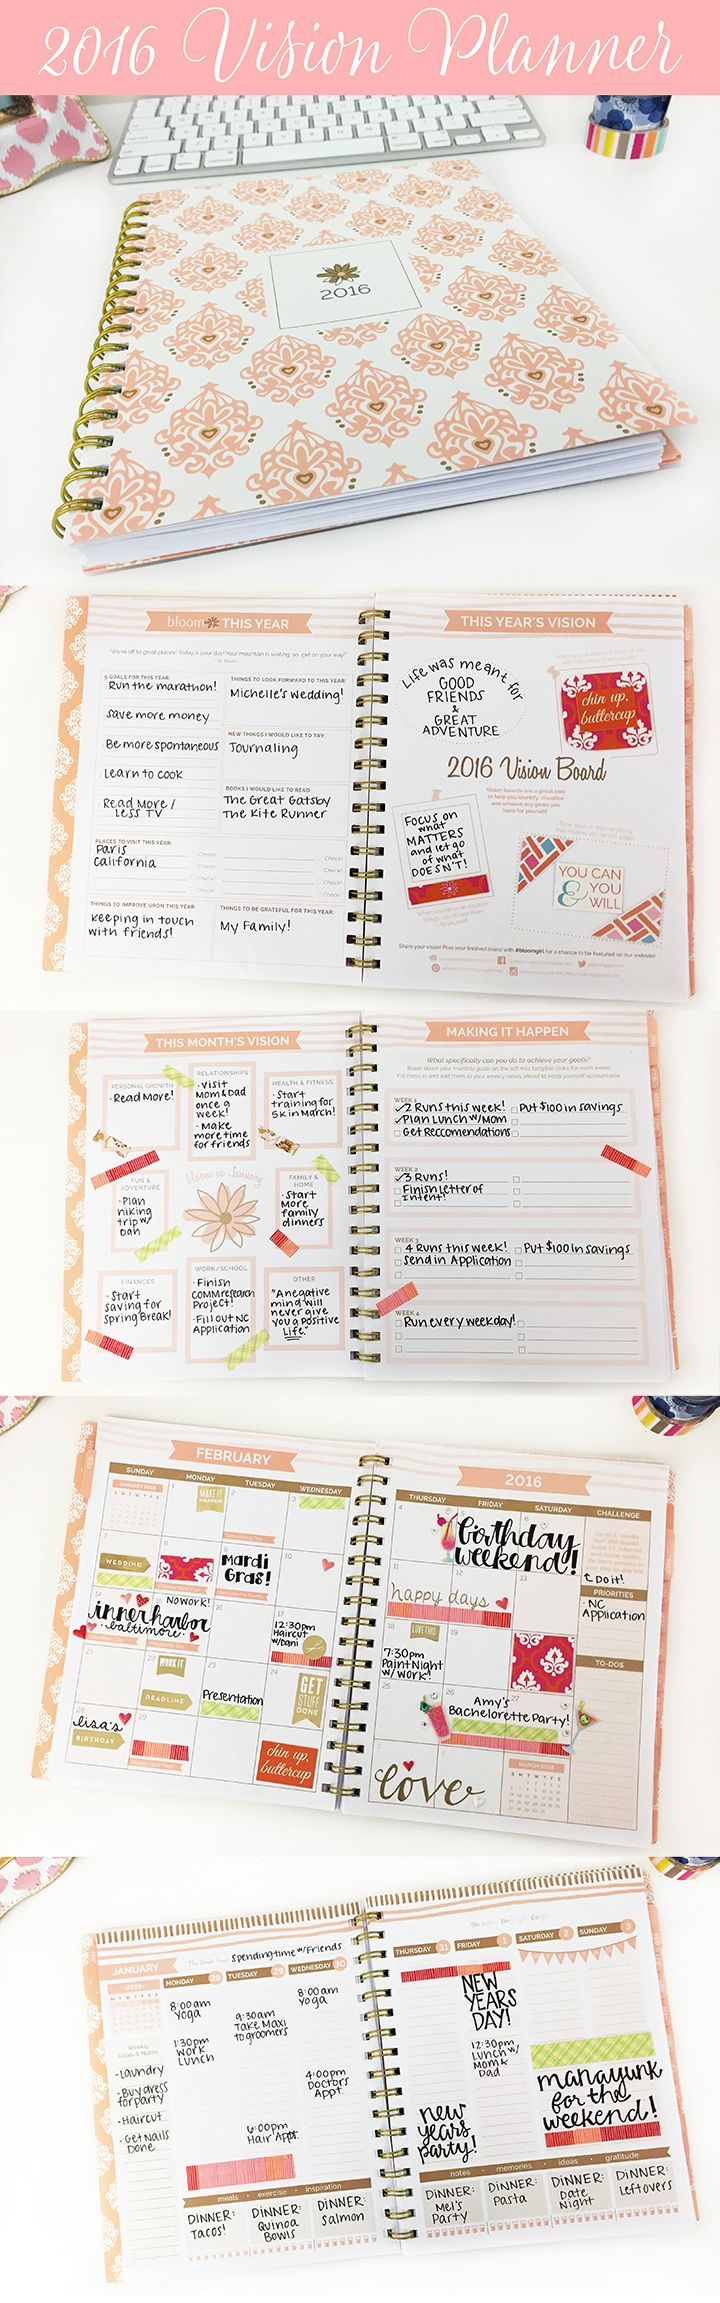 best images about vision board samples offices bloom s brand new 2016 vision planner is designed to help you achieve all of your goals